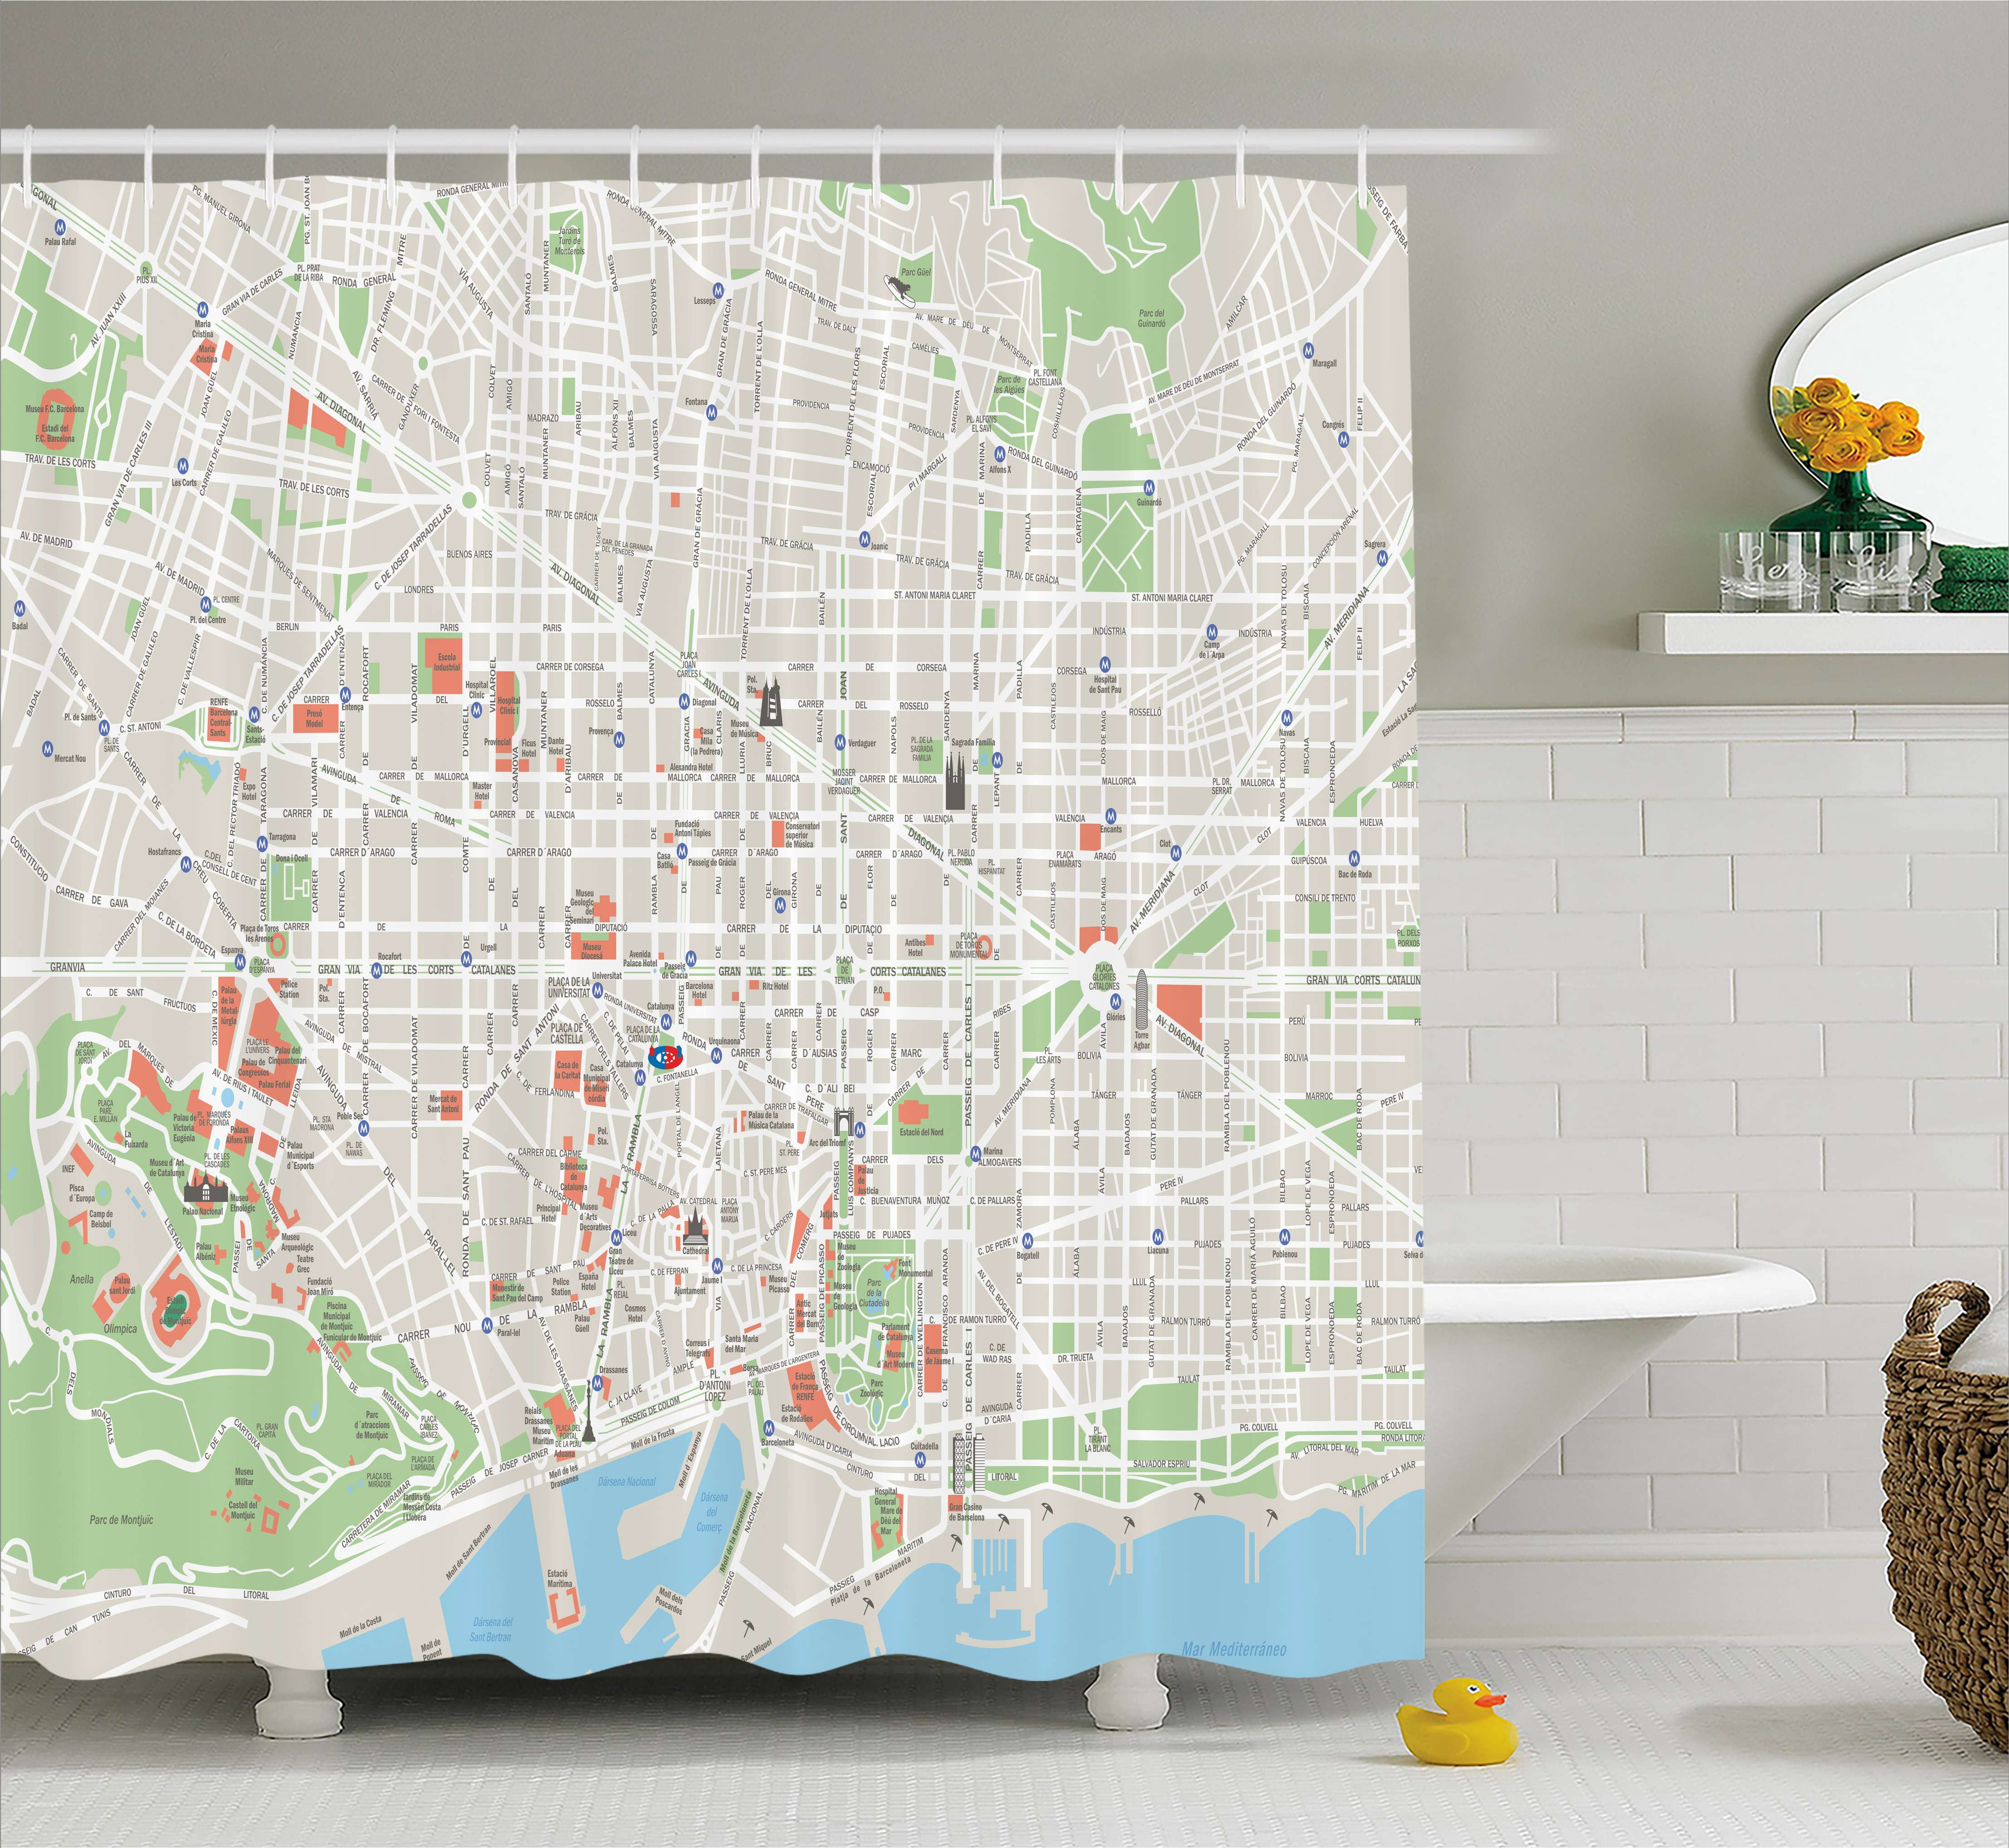 Map Shower Curtain Of Barcelona City Streets Parks Subdistricts Points Interests Fabric Bathroom Set With Hooks 69W X 70L Inches Beige Lime Green